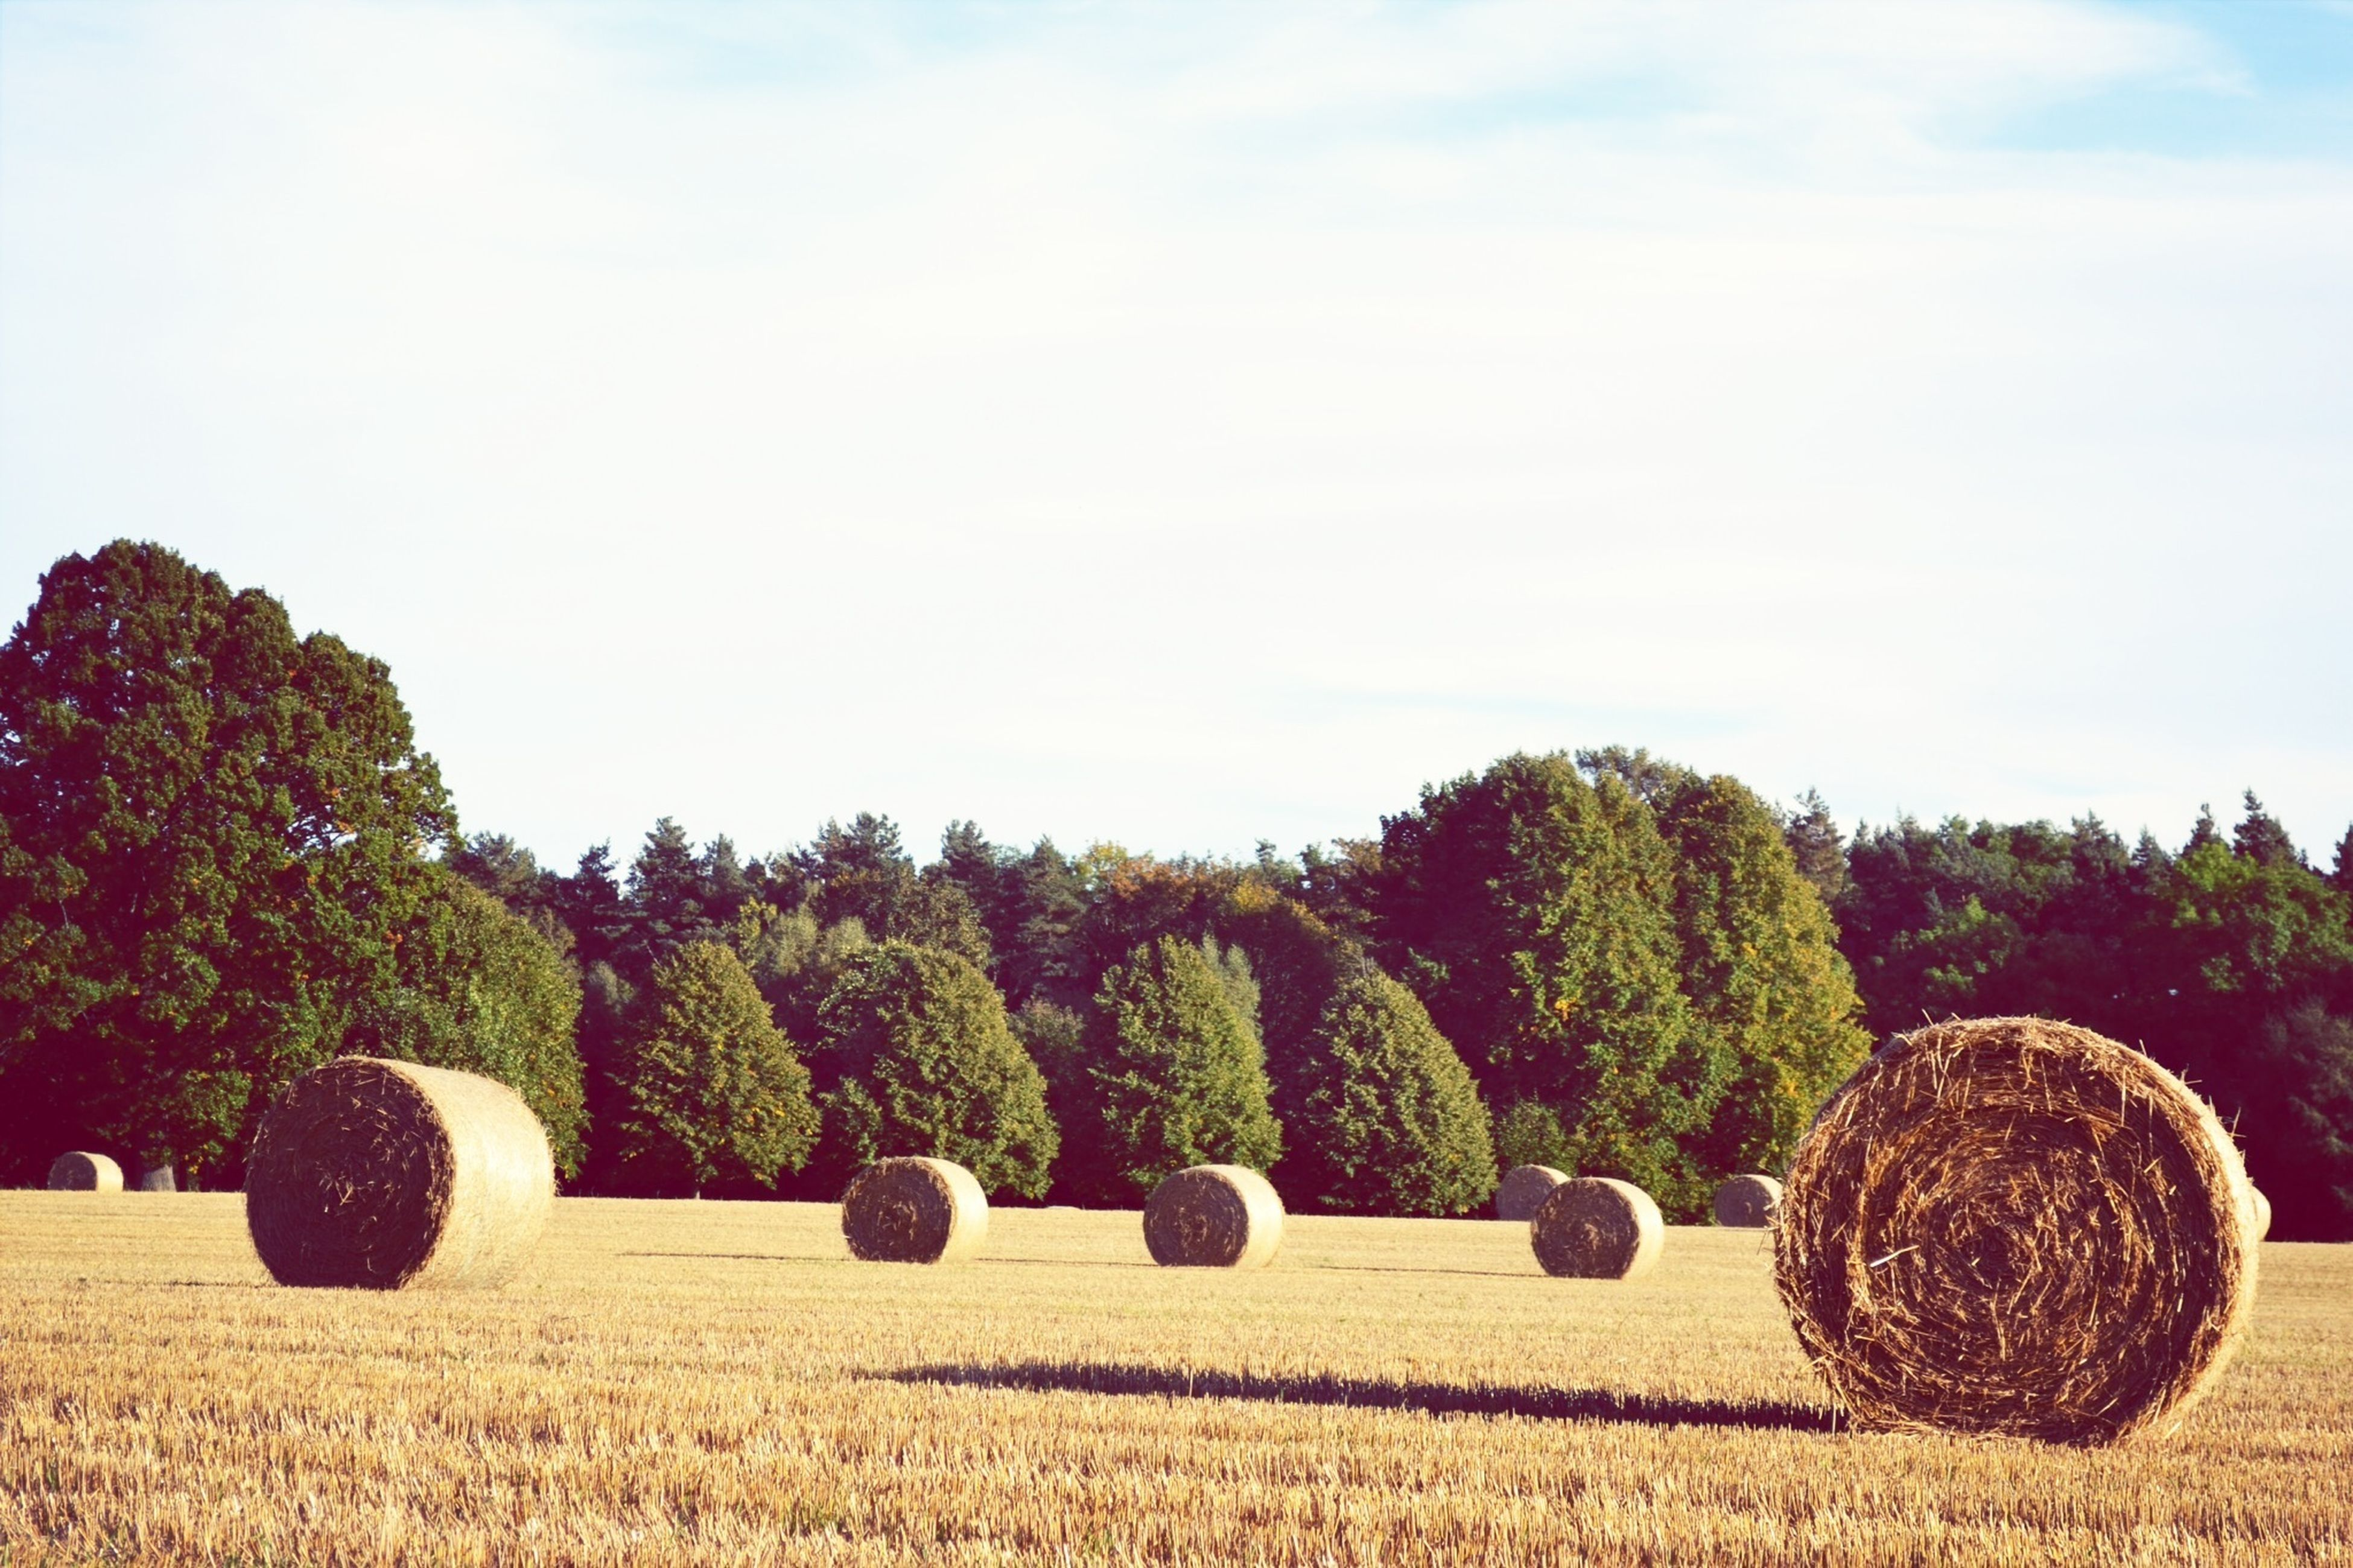 agriculture, field, rural scene, bale, farm, landscape, hay, harvesting, crop, sky, tranquil scene, tree, tranquility, nature, growth, cultivated land, rolled up, grass, scenics, beauty in nature